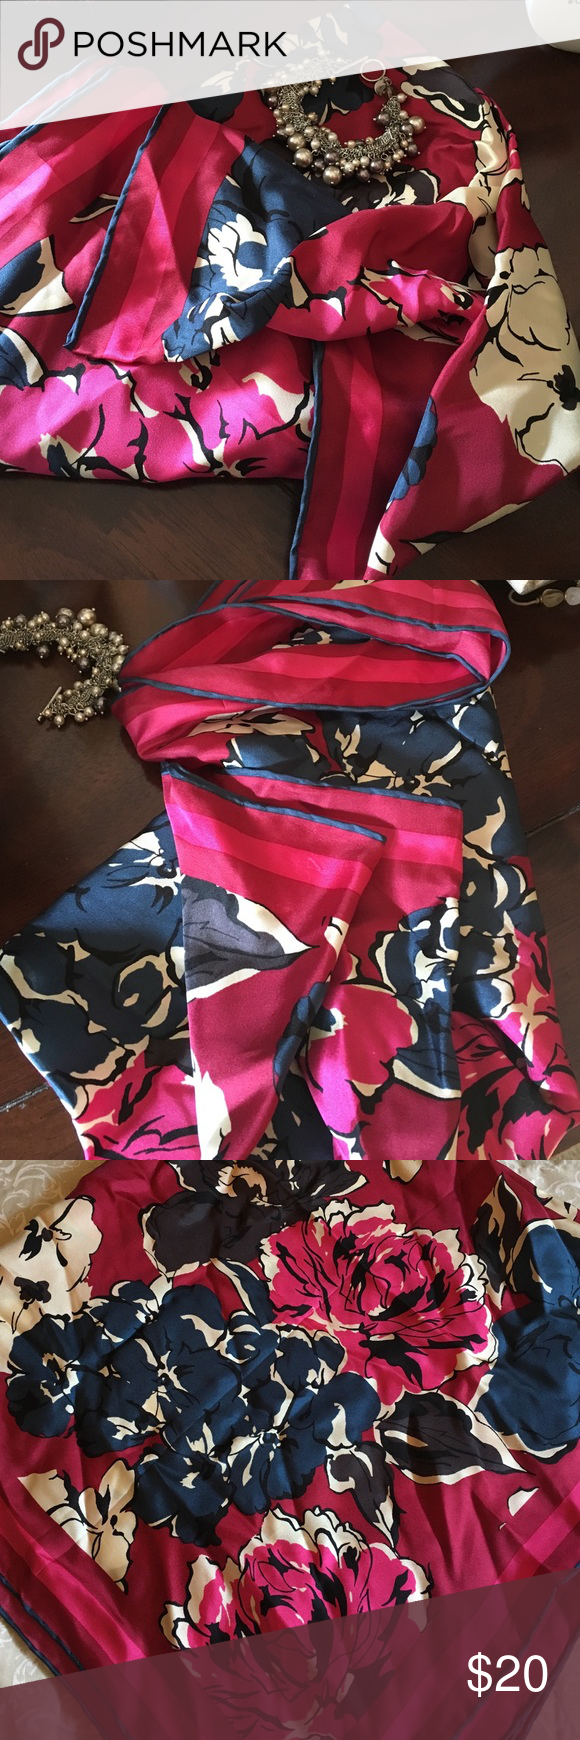 Talbots Square floral Silk Scarf Beautiful floral pattern silk scarf. Worn once. Talbots Accessories Scarves & Wraps